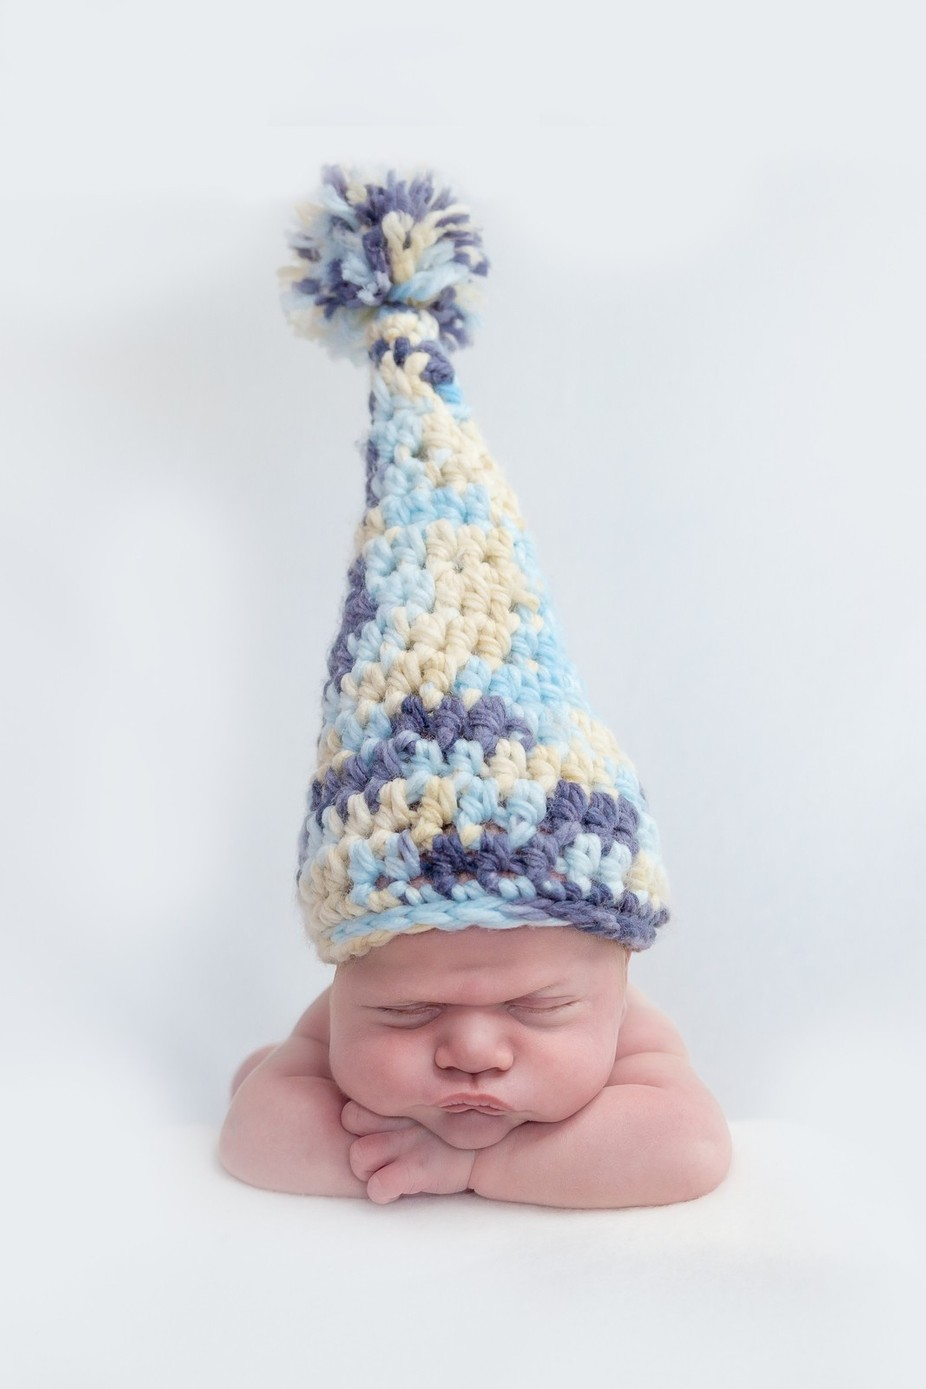 grumpy by Anneliese-Photography - Baby Face Photo Contest